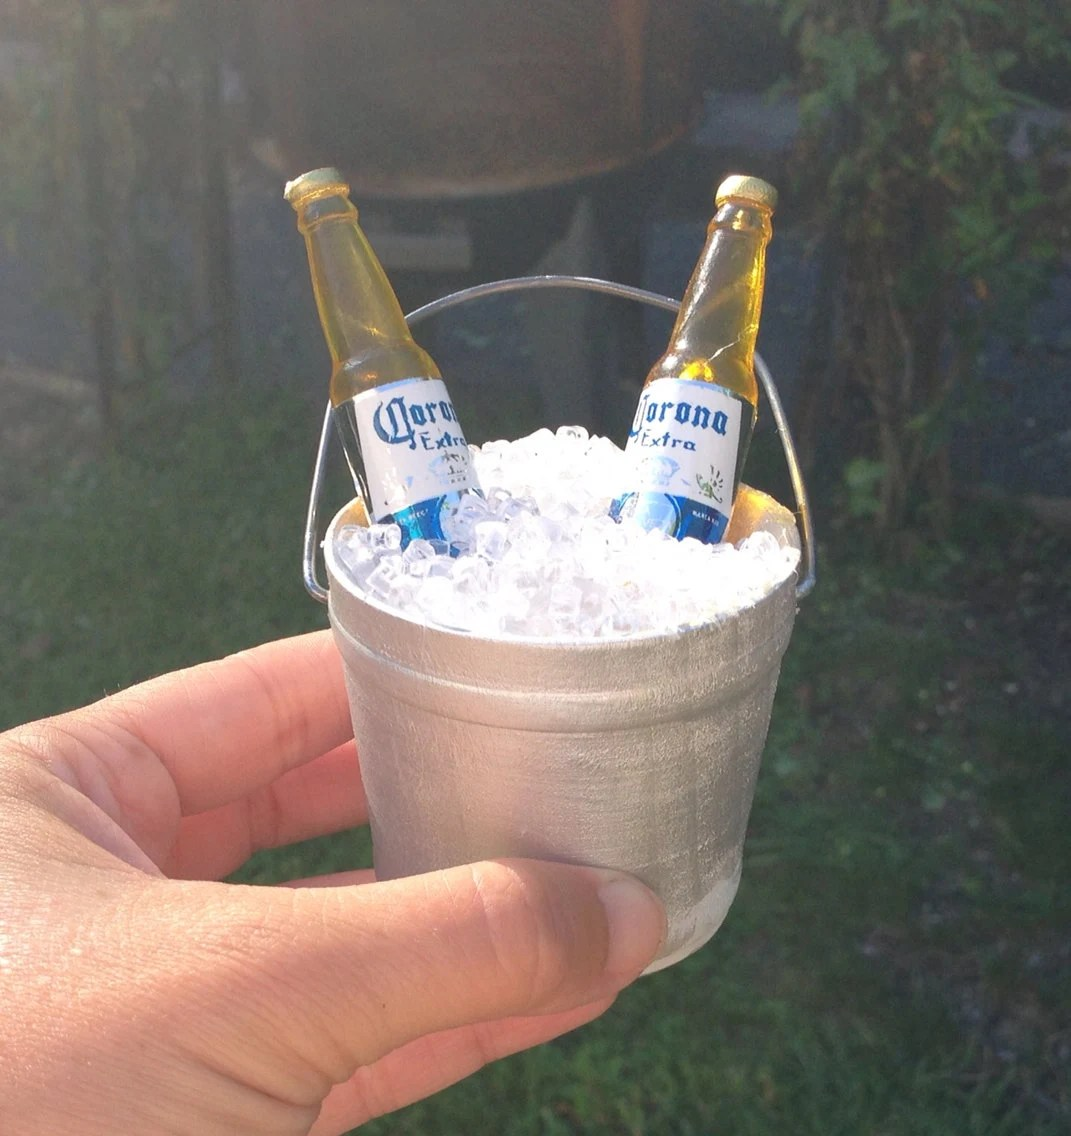 adirondack chair cake topper the wooden painted miniature bucket of beer wedding beach